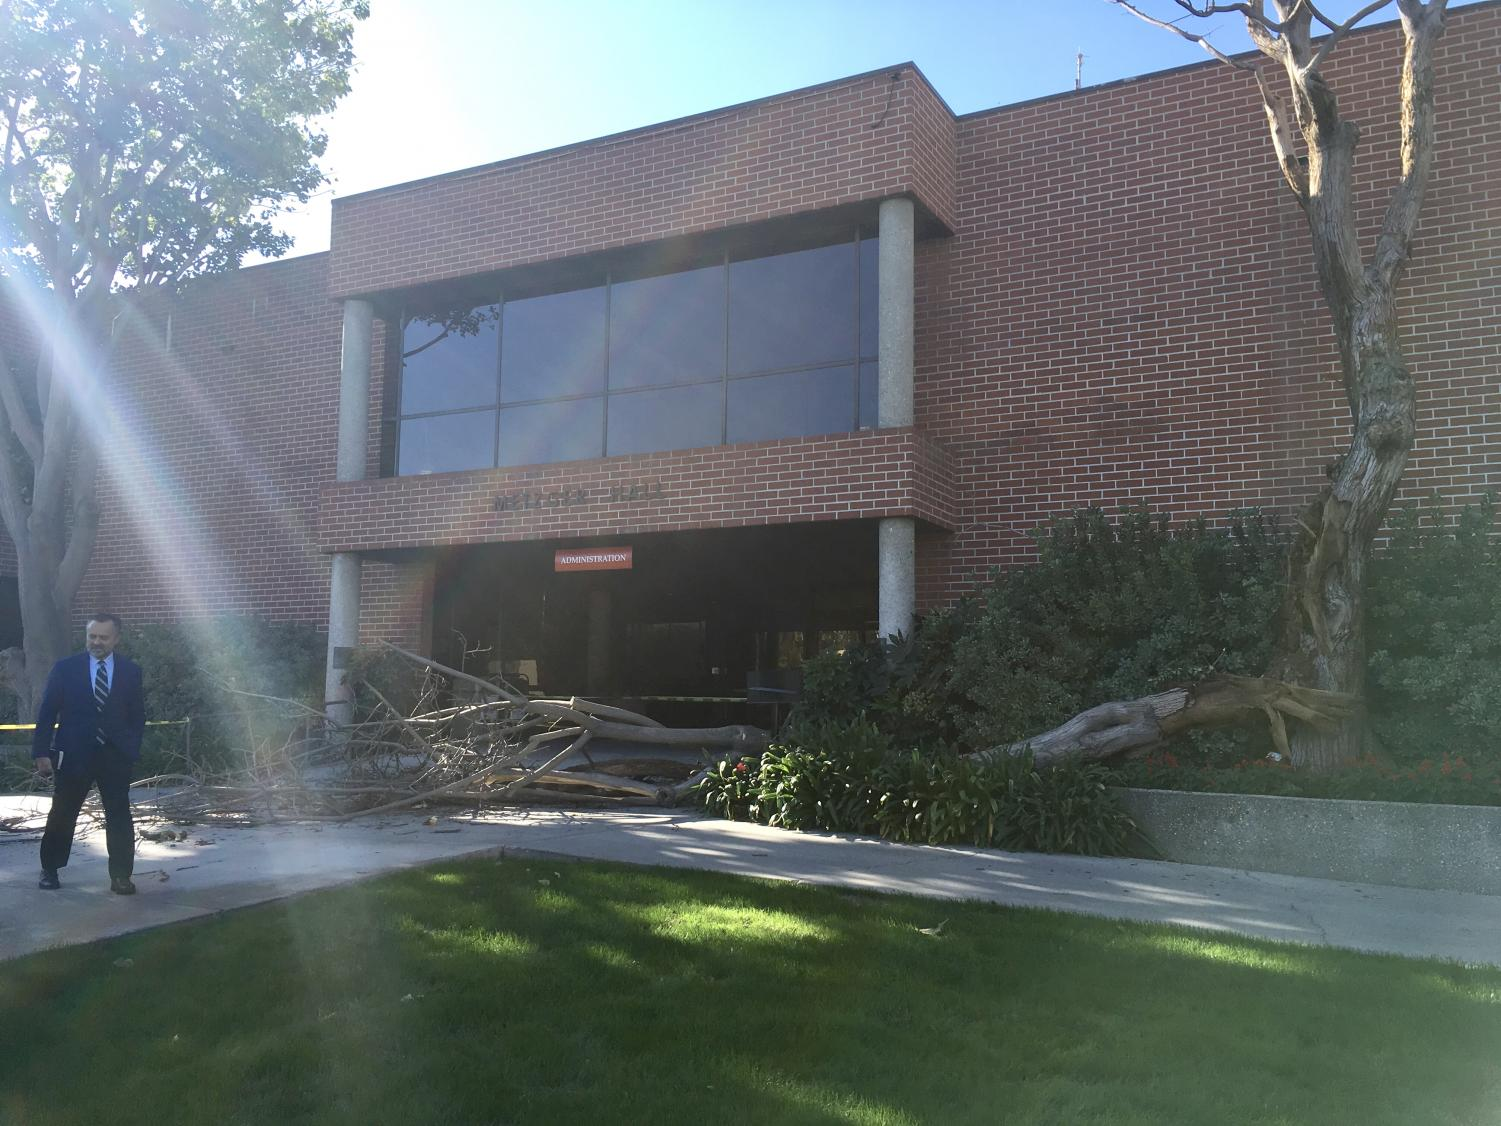 President Barry Corey walks away from the entrance of his workplace, Metzger Hall, after a tree fell in front the building on the morning of Nov. 9.